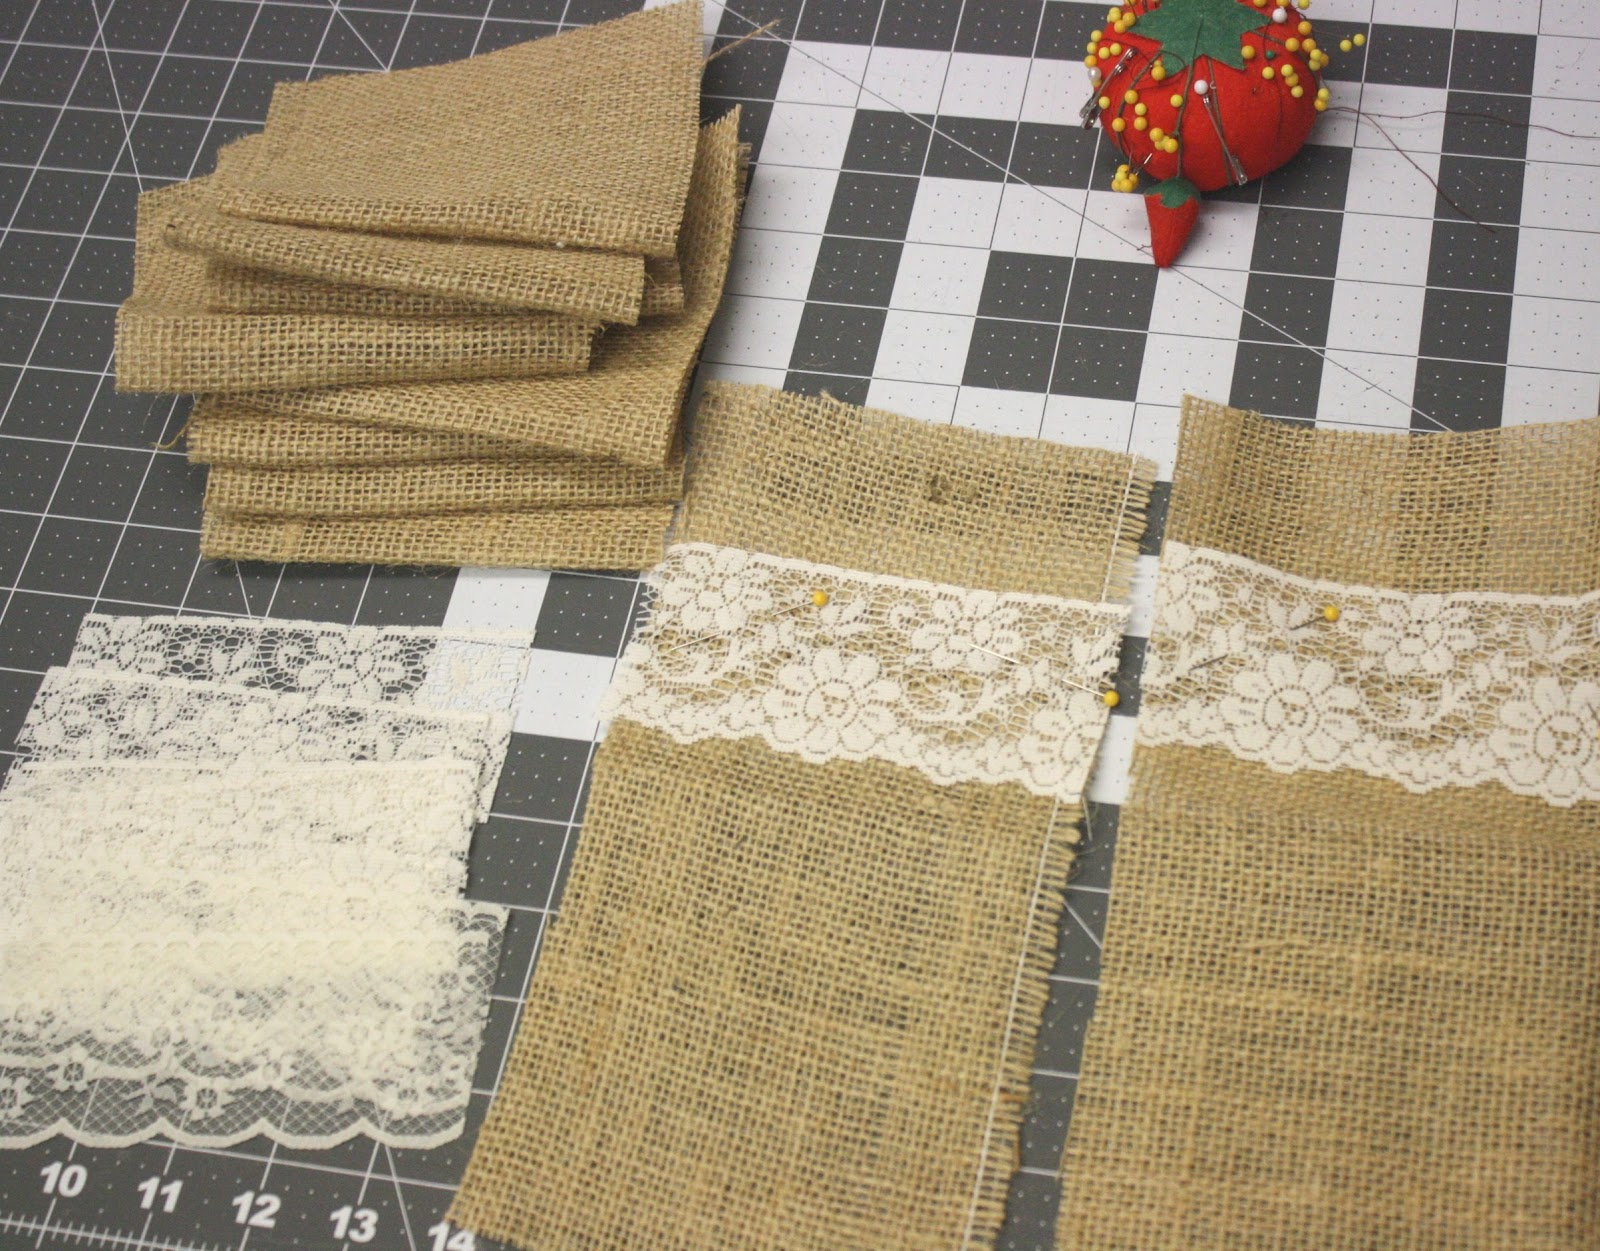 I Picked Up Plastic Treat Bags At Hobby Lobby So That Could Portion Out The Nuts Into Them And Then Slide Burlap